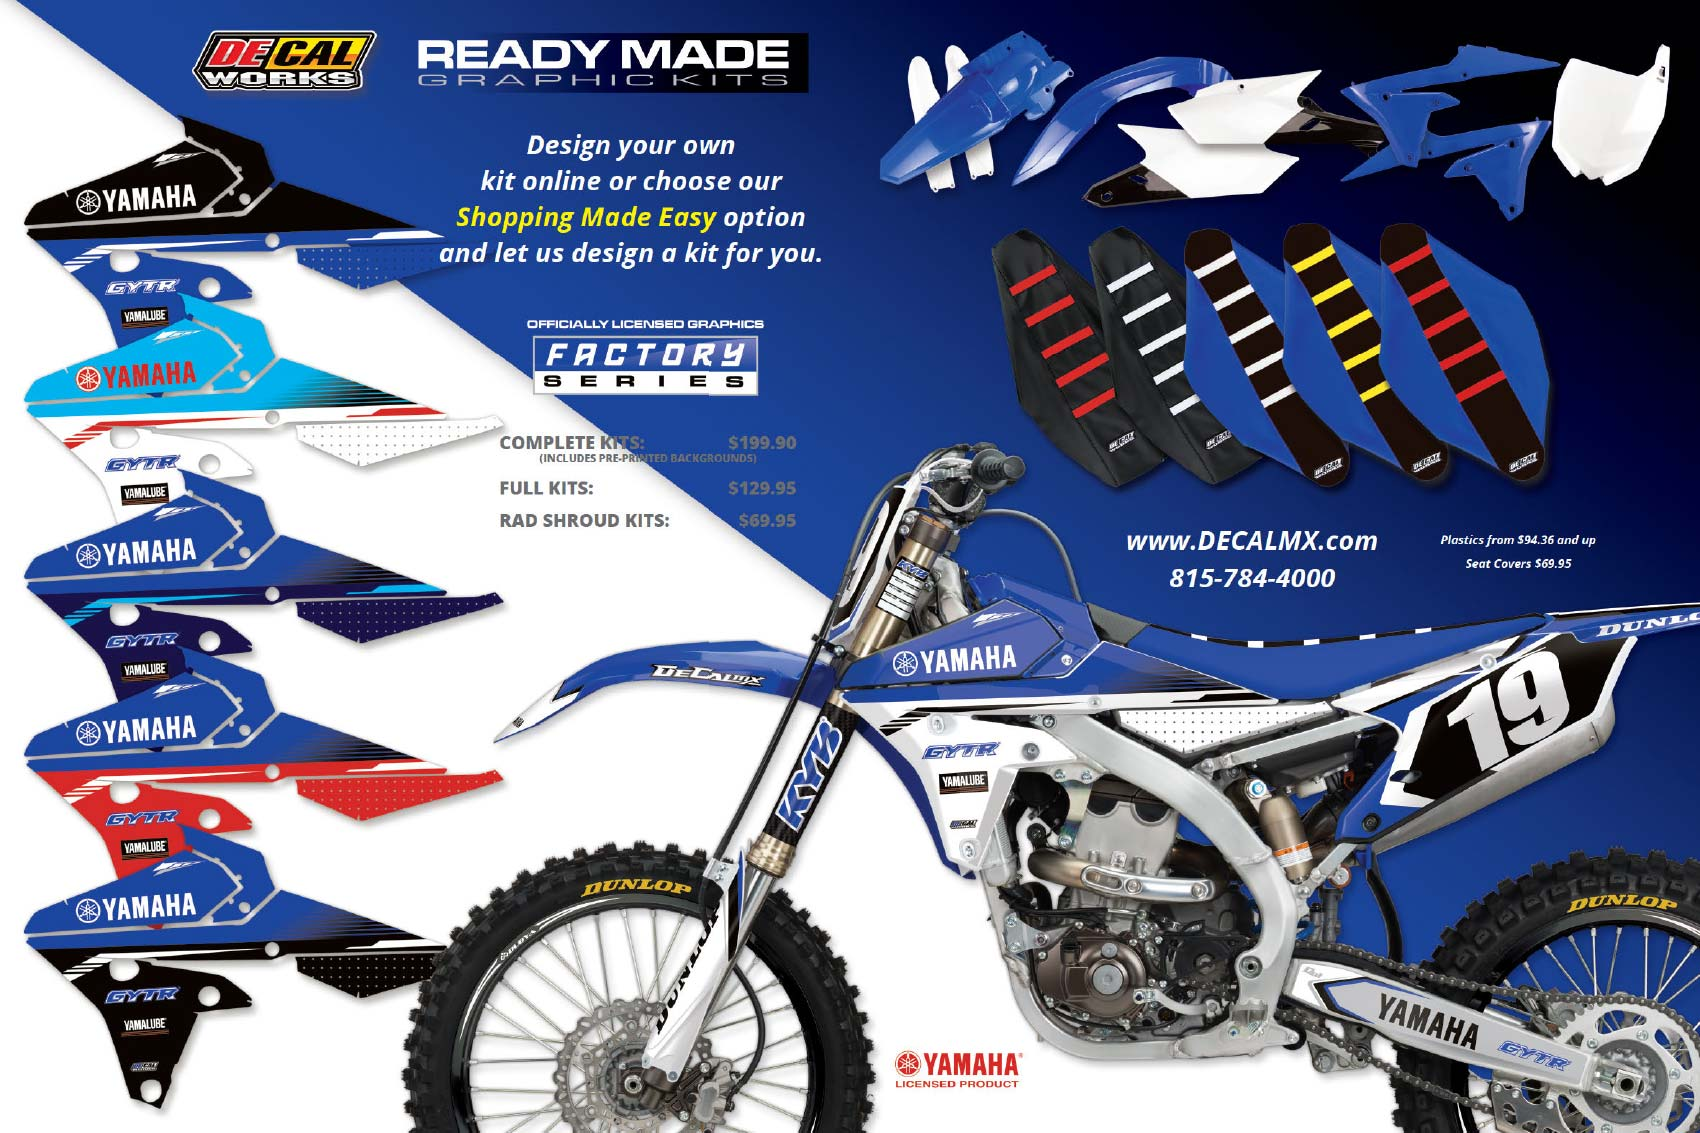 Racer X May 2019 - Decal Works Advertisement